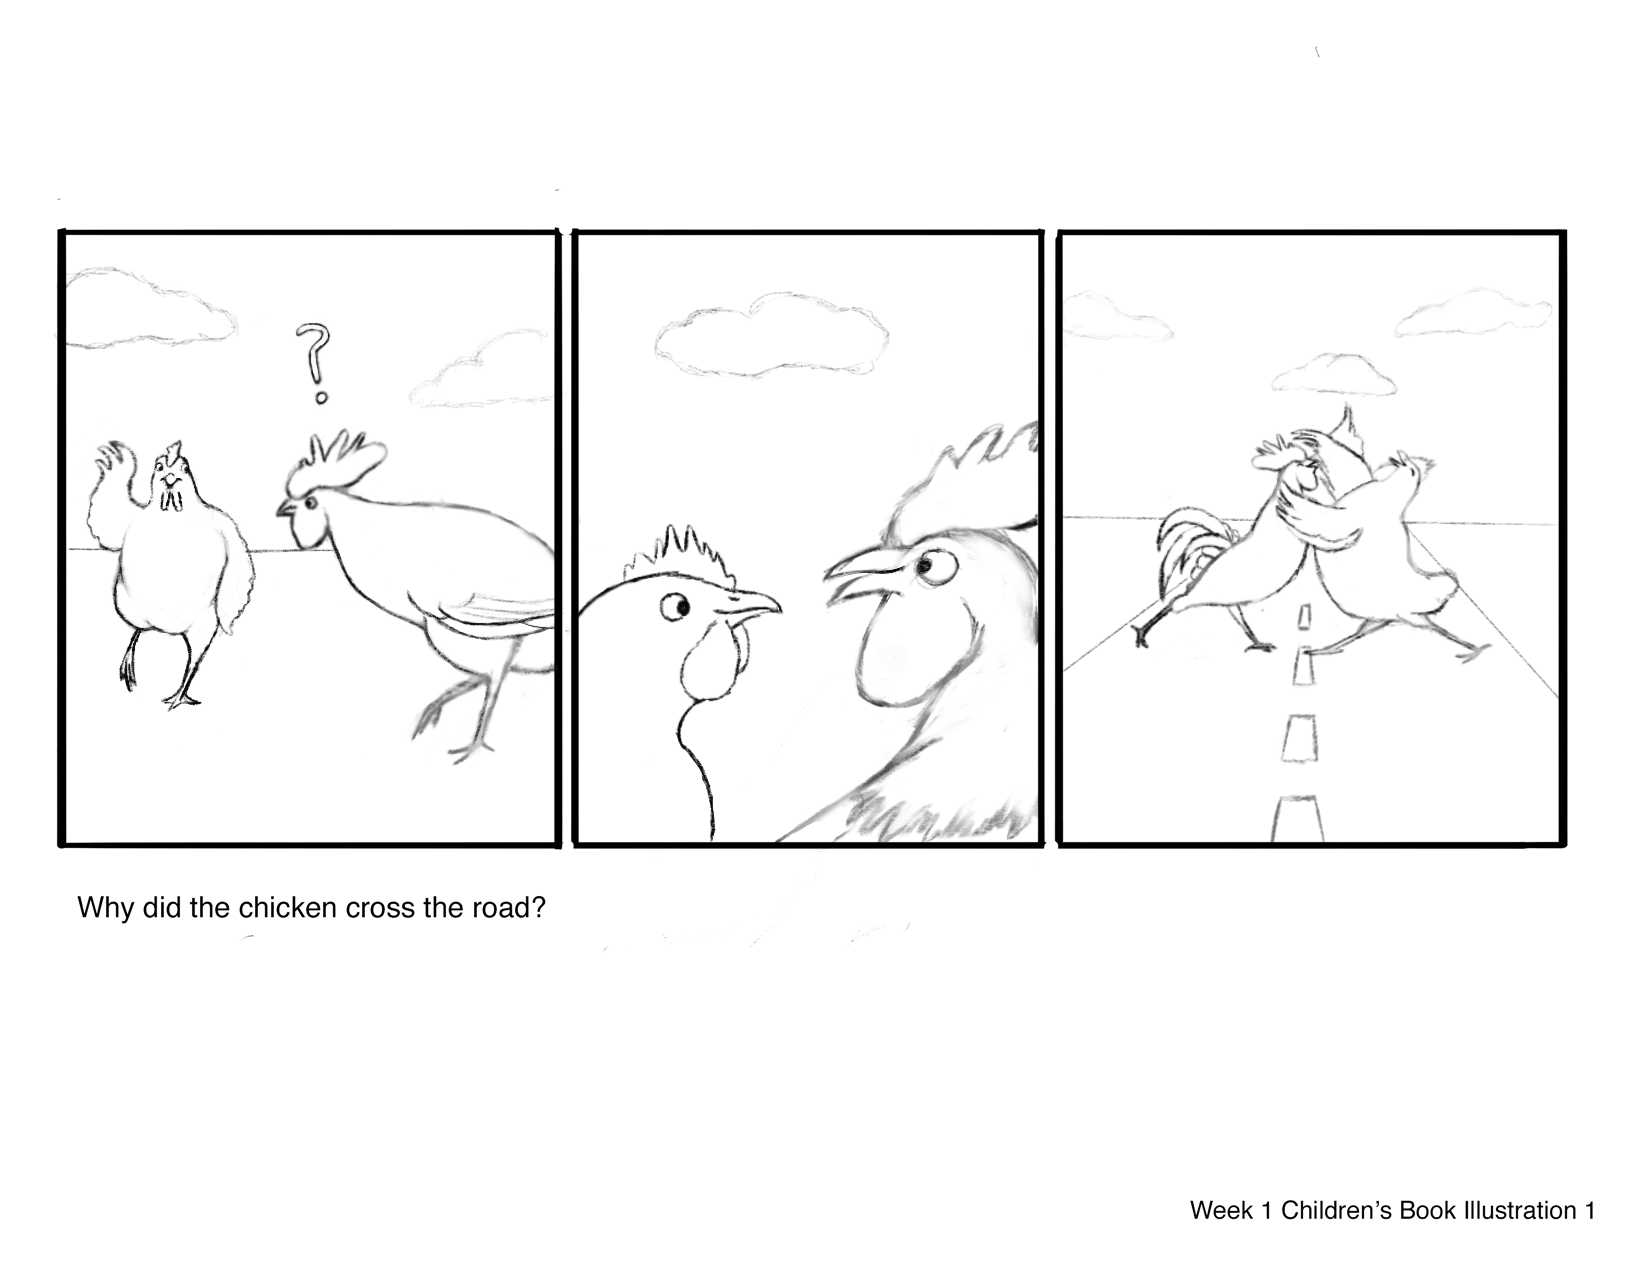 Sequential Art – Why Did the Chicken Cross the Road?